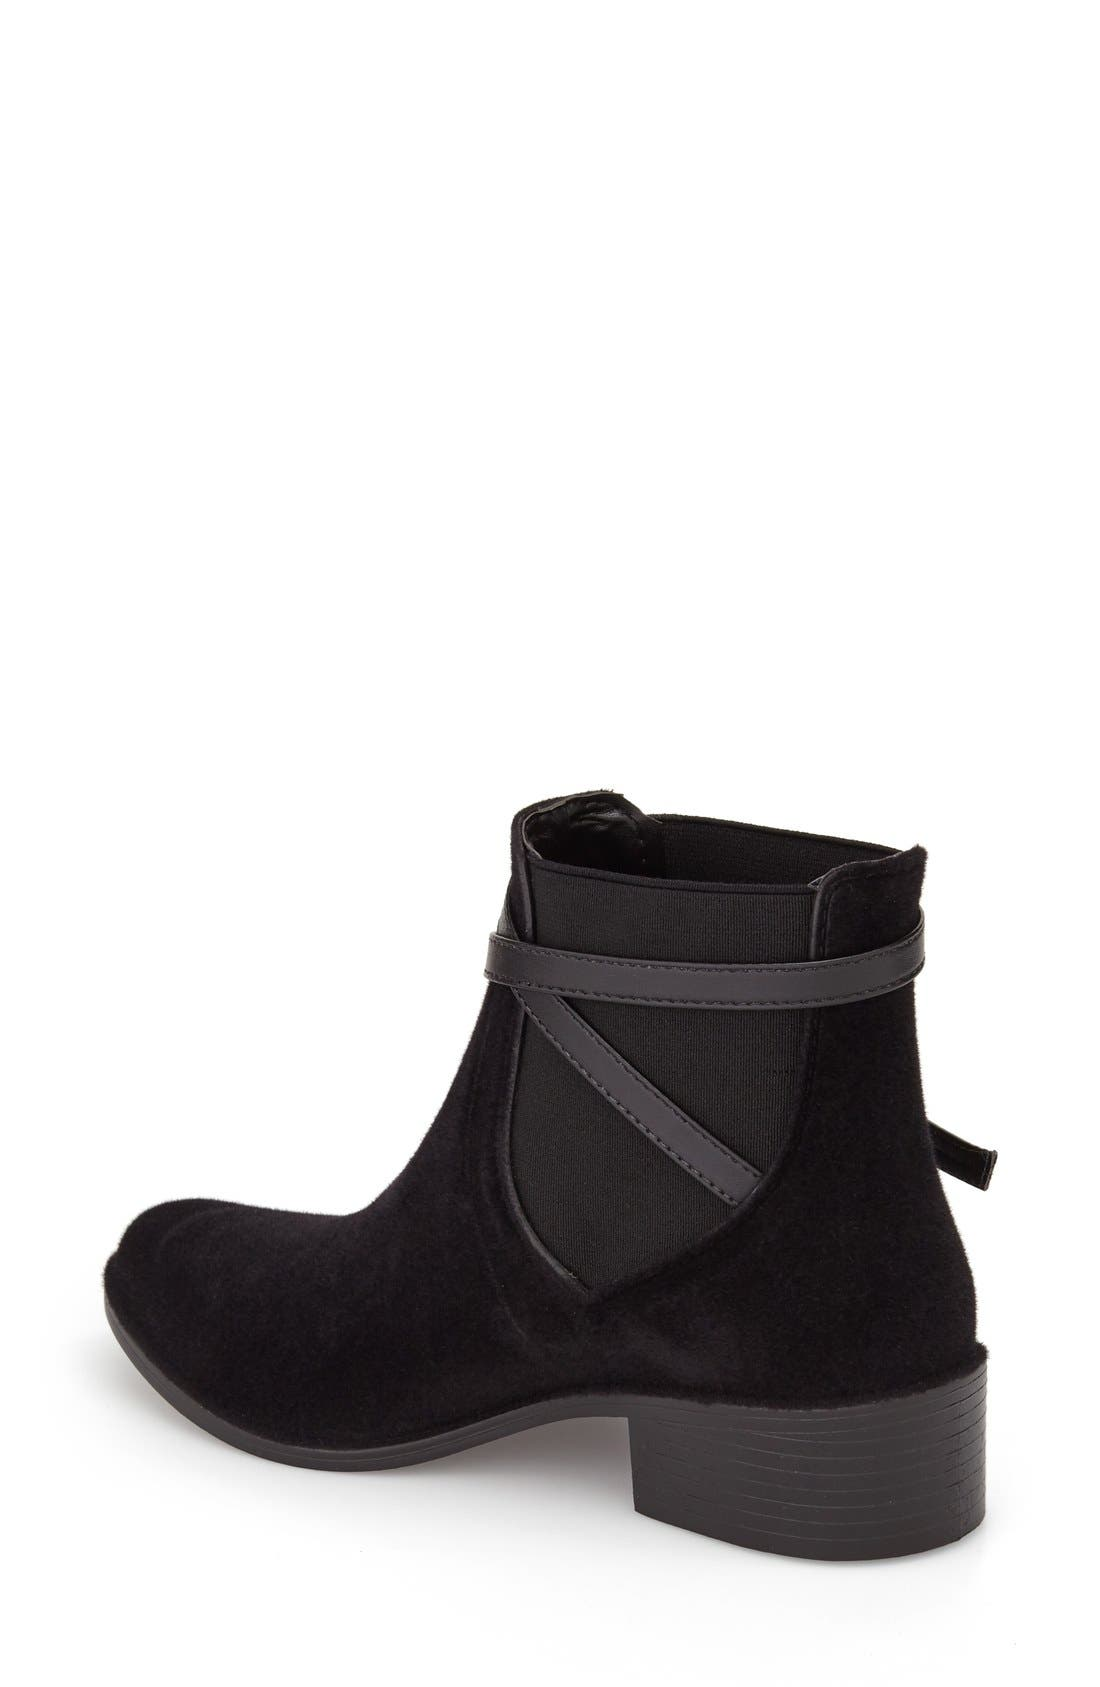 Bernardo Peony Water Resistant Chelsea Boot,                             Alternate thumbnail 2, color,